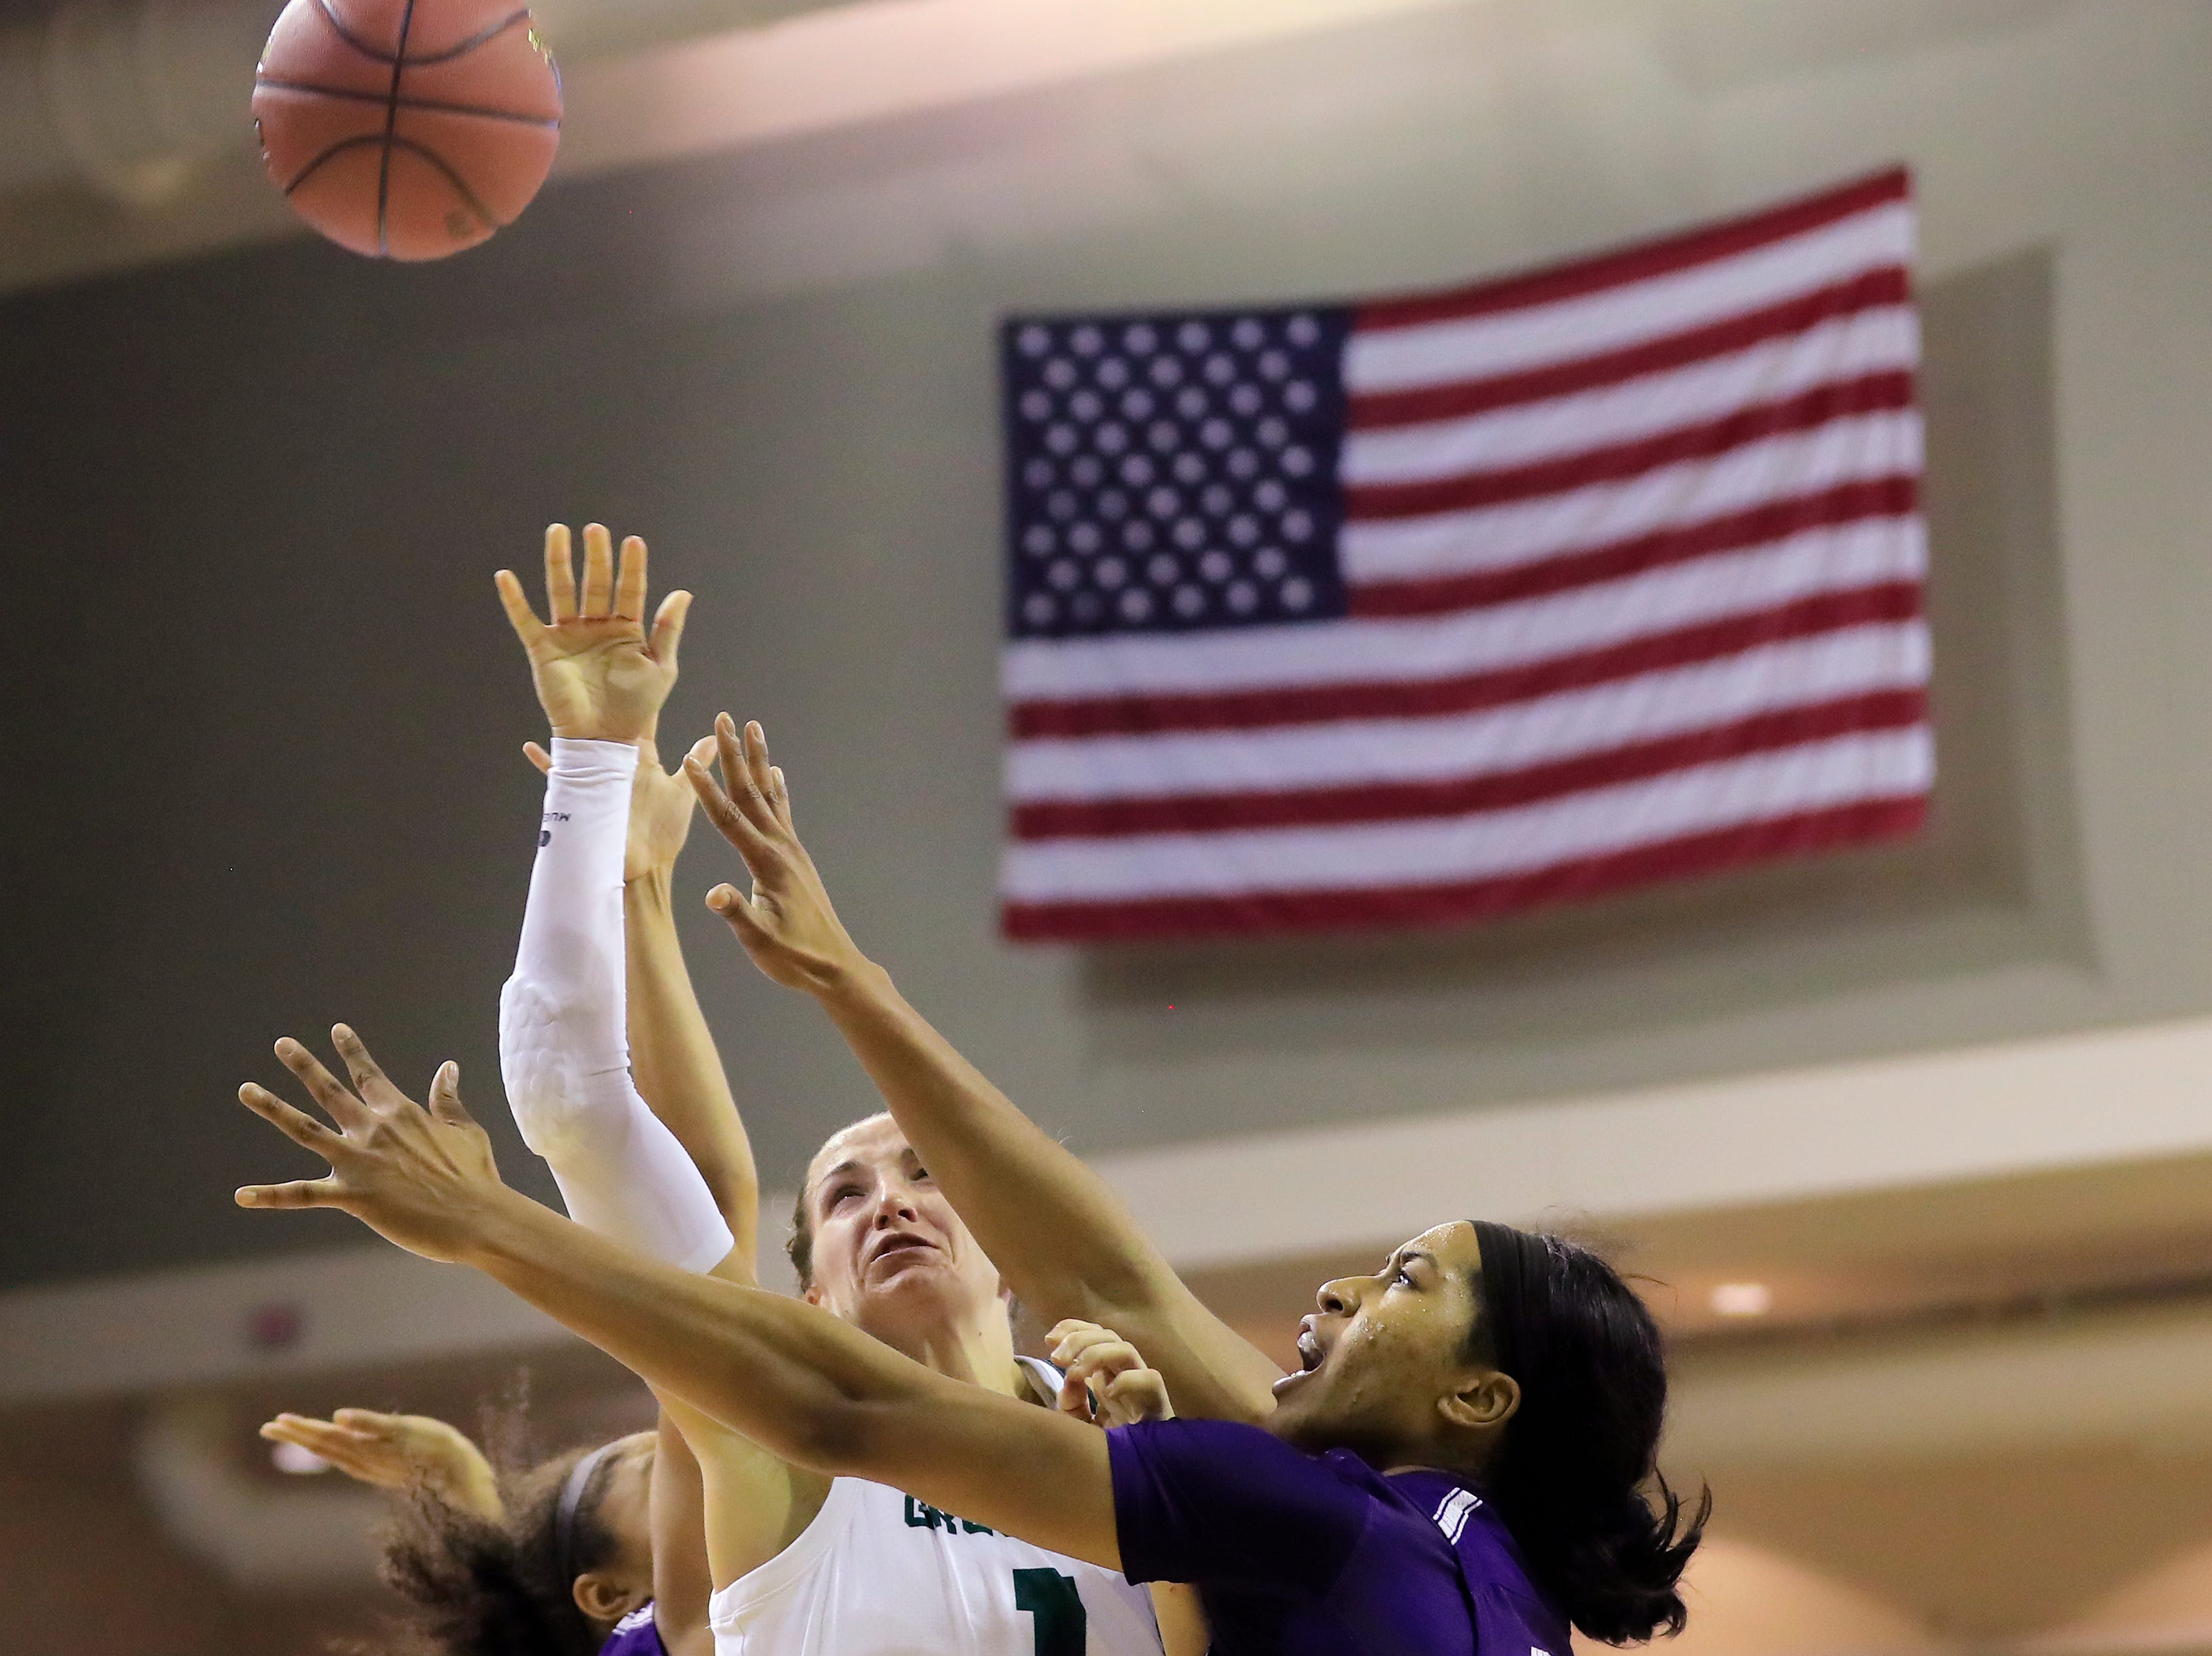 Green Bay Phoenix guard Jen Wellnitz (1) shoots a contested basket against the Northwestern Wildcats in a women's NCAA basketball game at the Kress Center on Tuesday, November 6, 2018 in Green Bay, Wis.